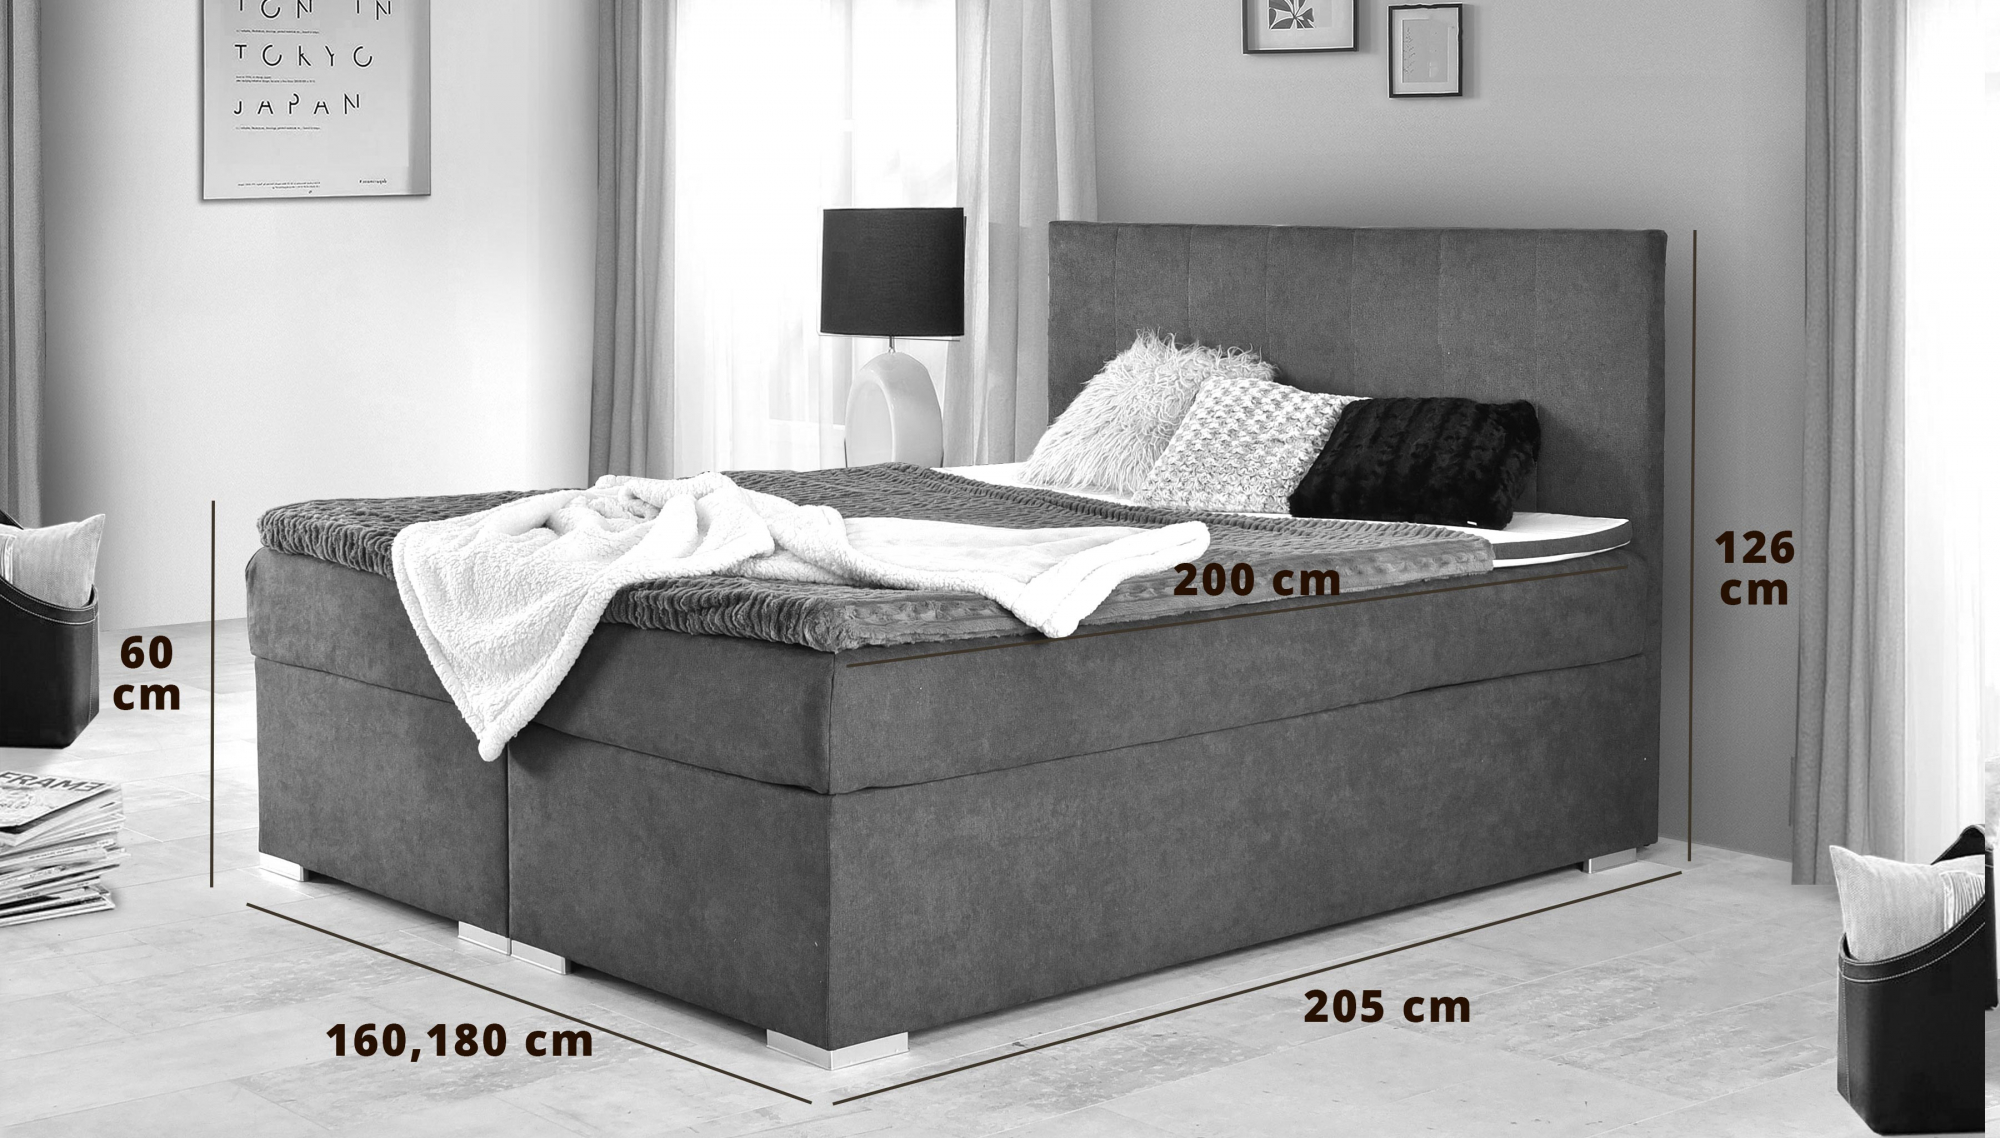 Full Size of Boxspring Postelje Forum Postelja 140x200 160x200 Akcija Harvey Norman Betten Bett Sofa Mit Schlaffunktion Landhausstil Hülsta Selber Bauen Schlafzimmer Set Wohnzimmer Boxspring Postel